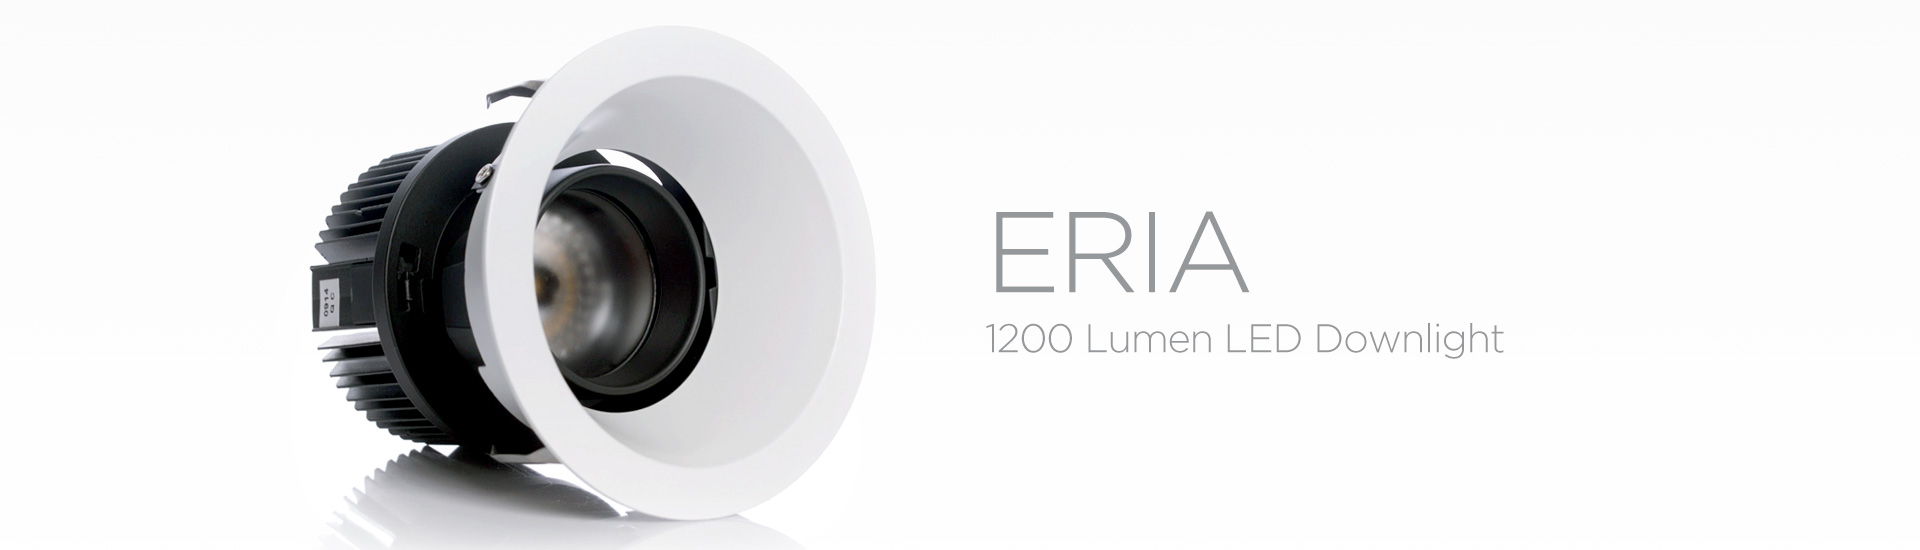 ERIA 1200 Lumen LED Downlight